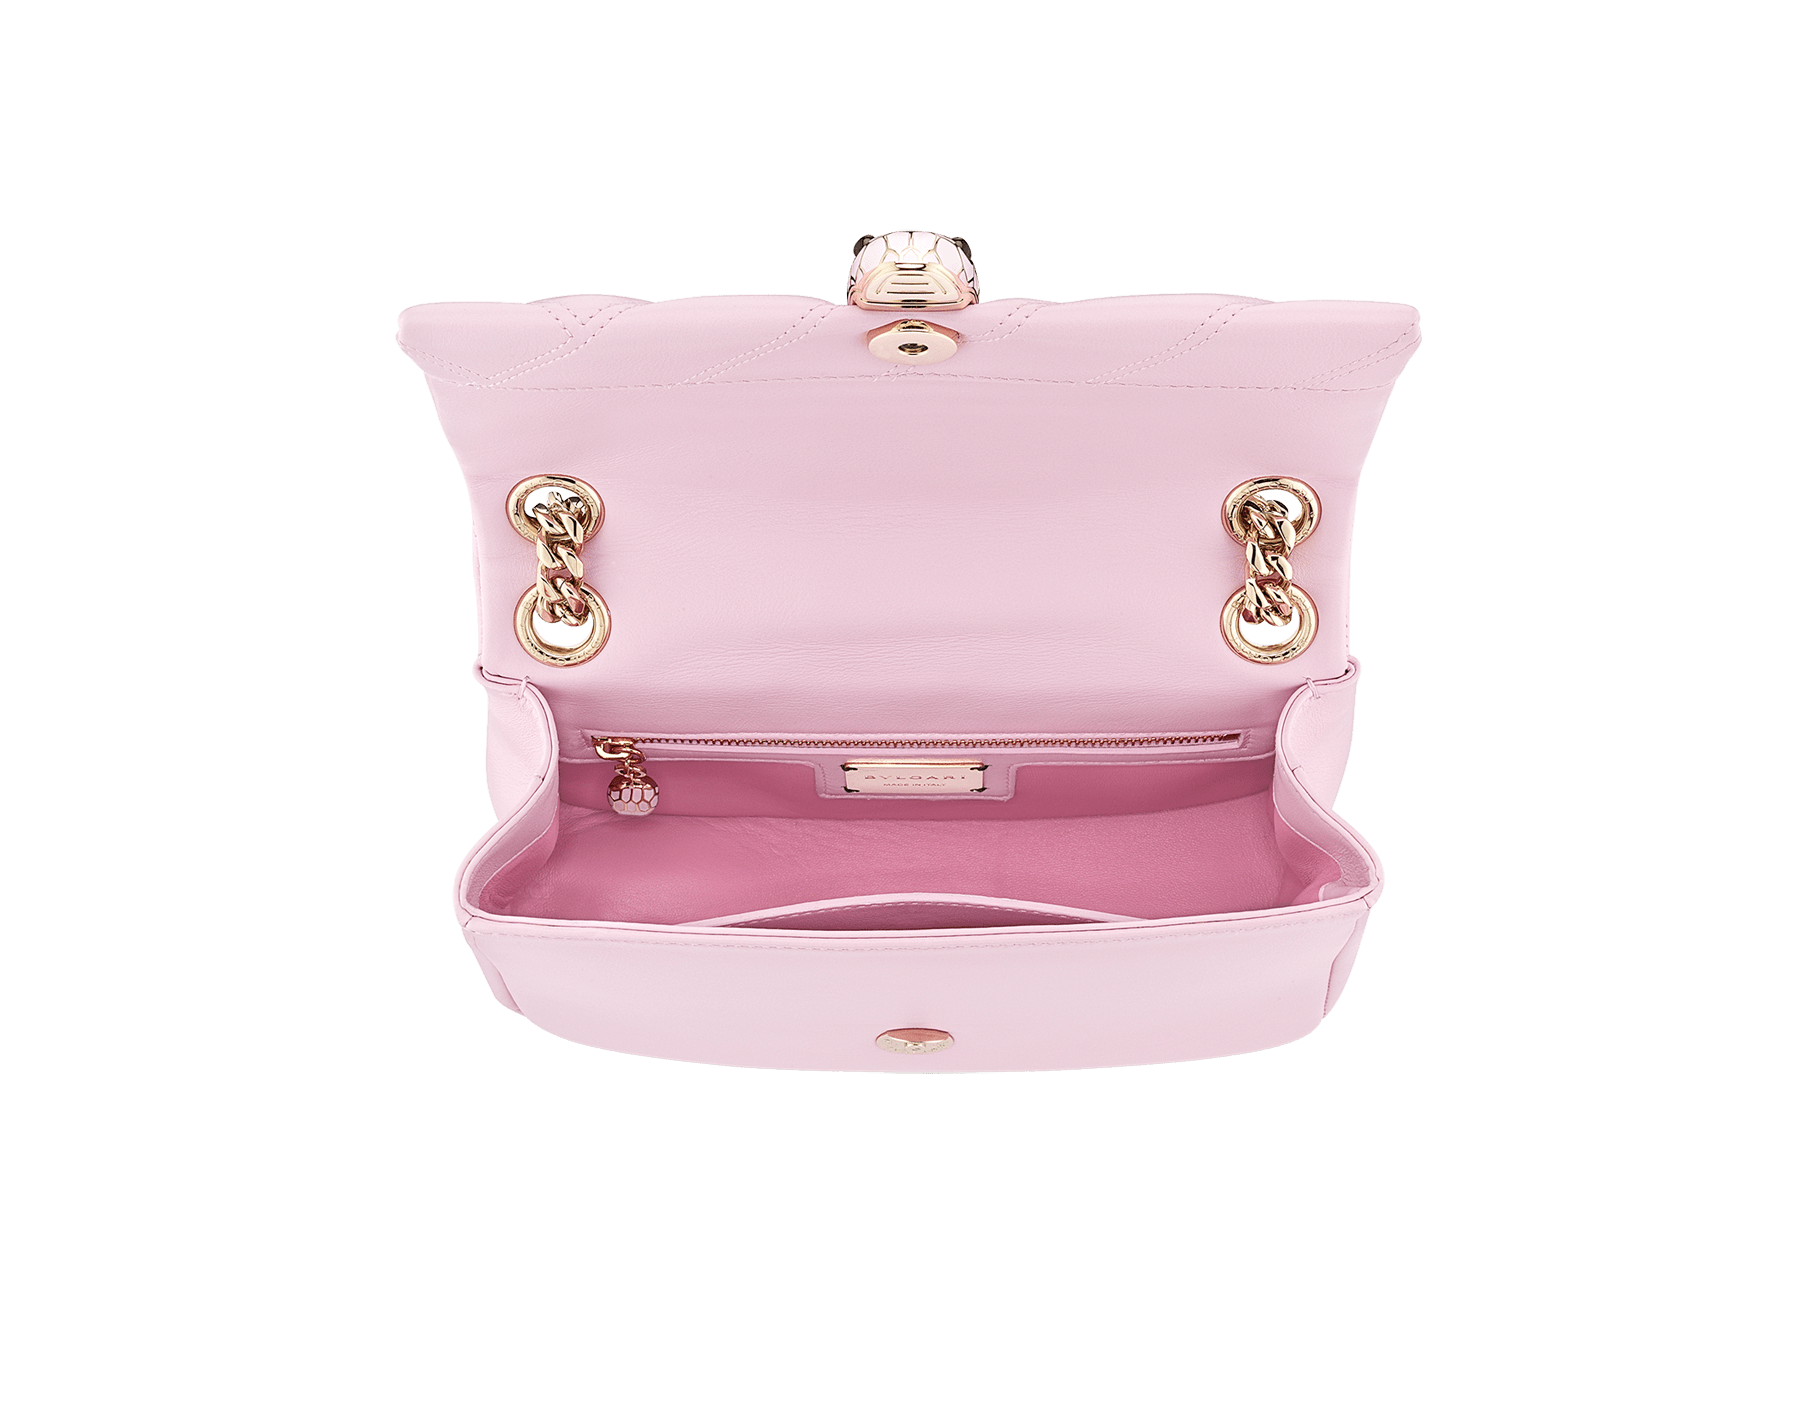 Serpenti Cabochon shoulder bag in soft matelassé rosa di francia nappa leather, with a graphic motif and rosa di francia calf leather. Brass light gold plated seductive snakehead closure in matt rosa di francia, shiny rosa di francia enamel and black onyx eyes. 288720 image 4